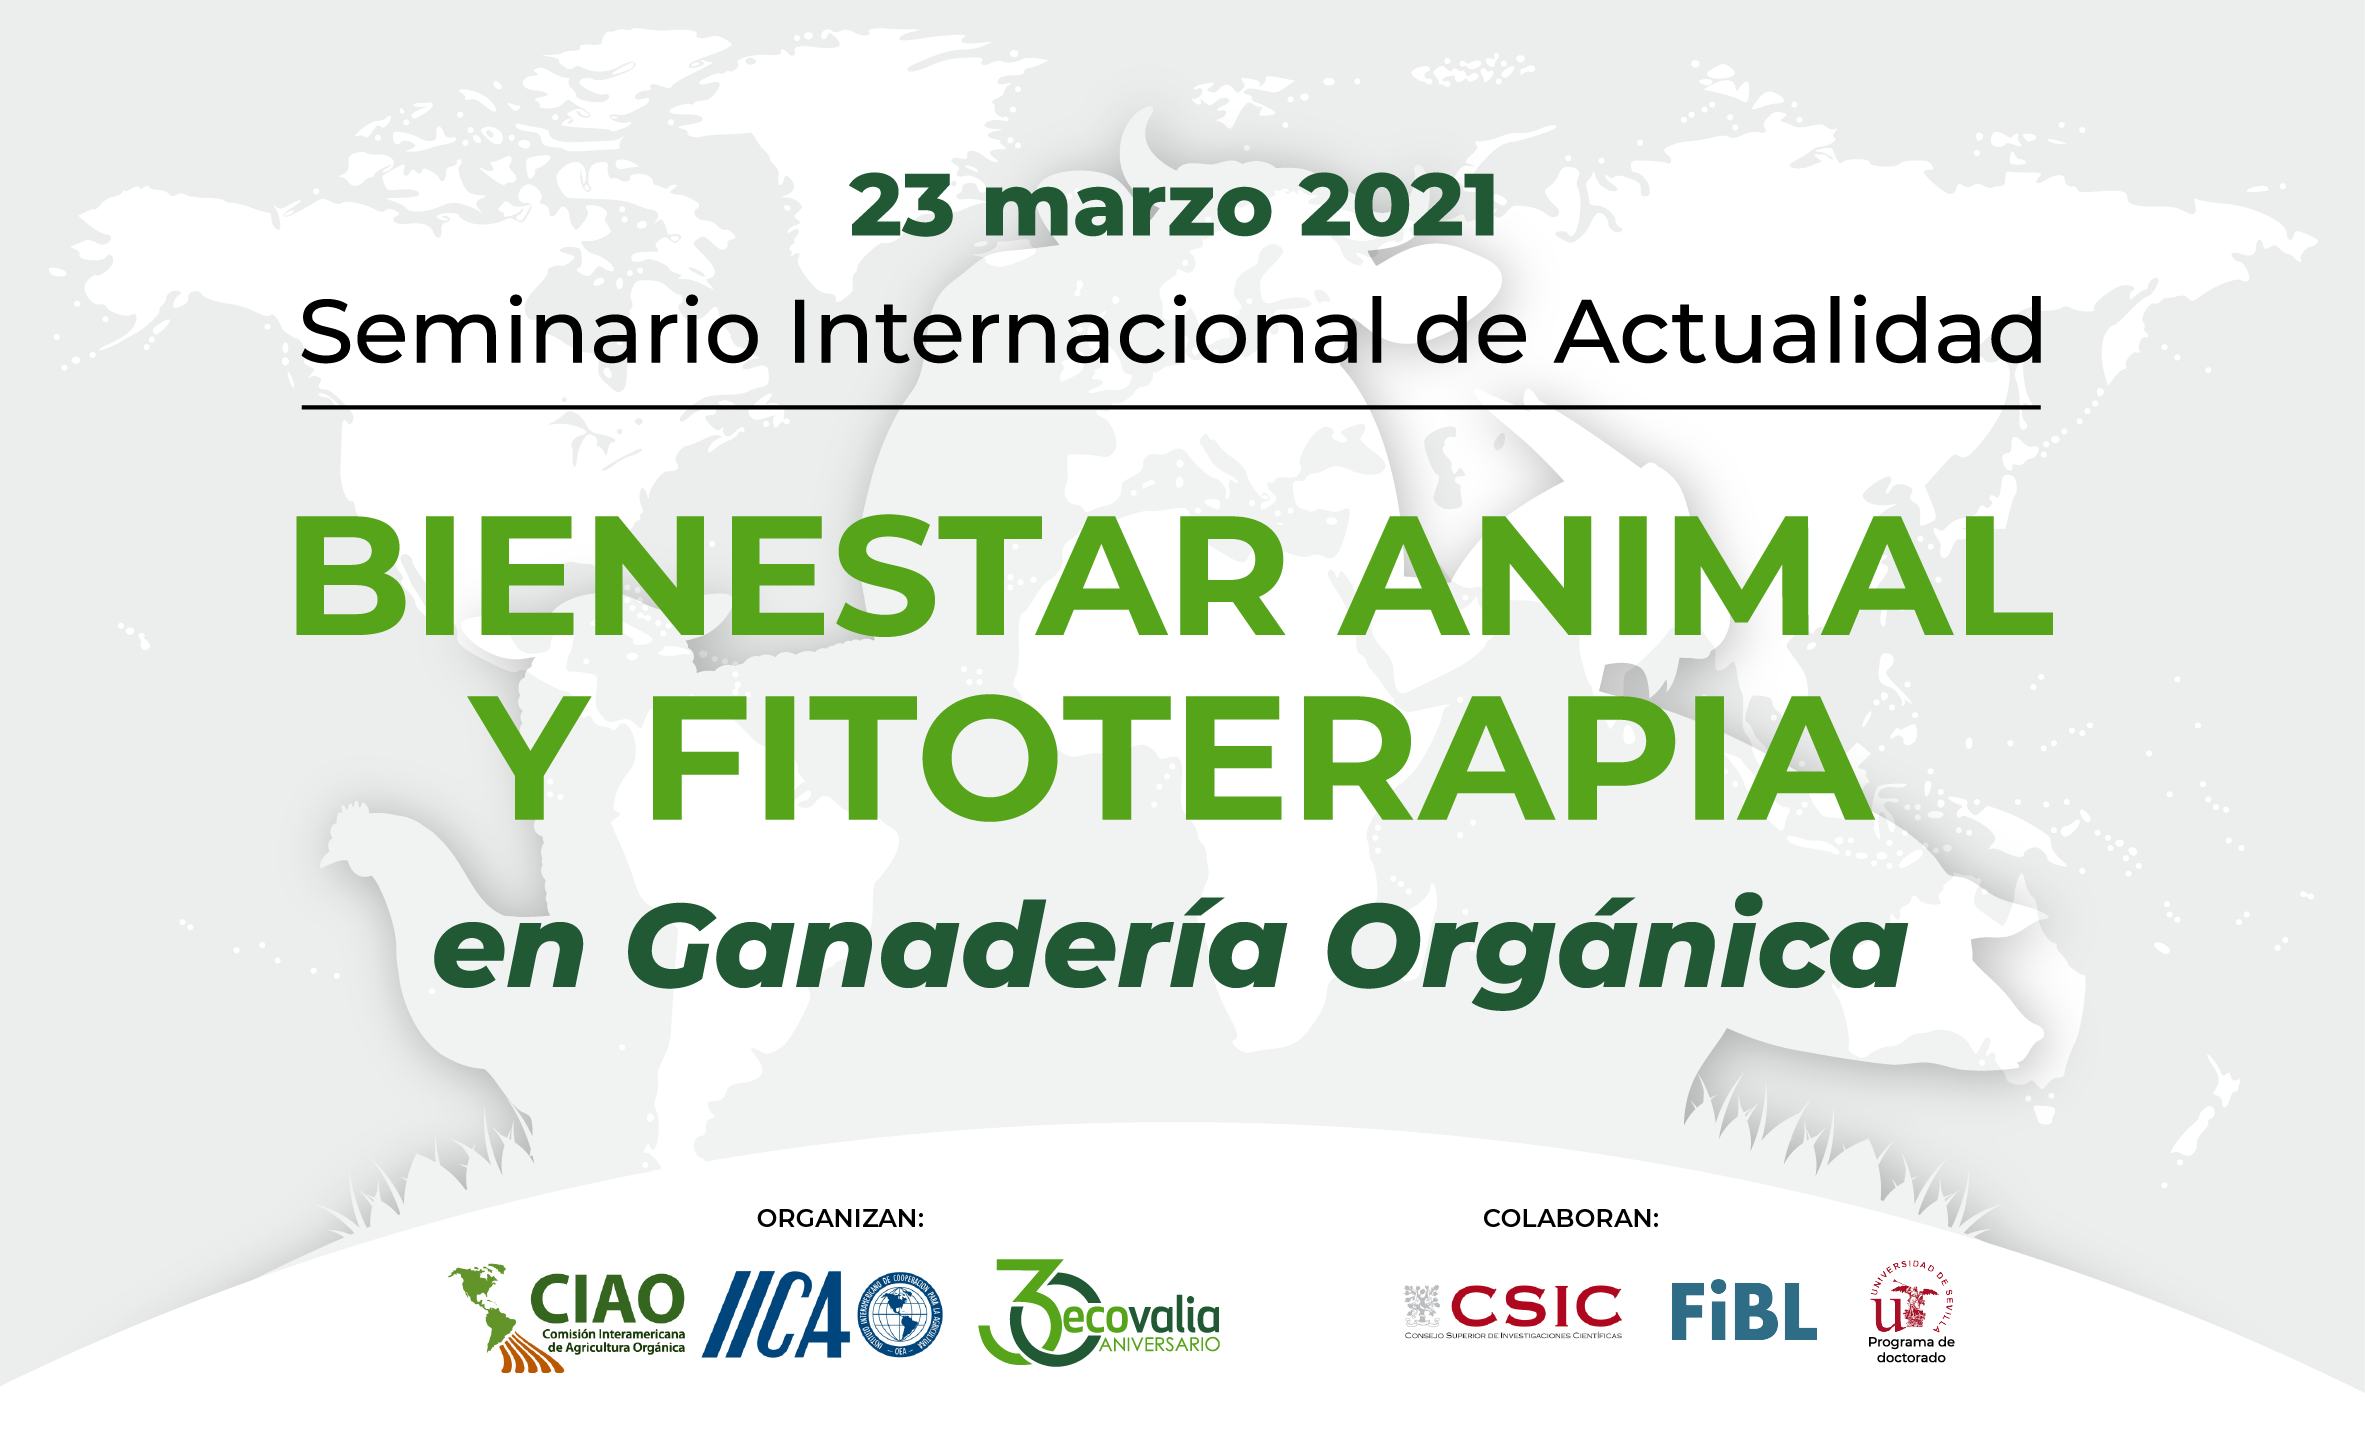 BIENESTAR ANIMAL Y FITOTERAPIA